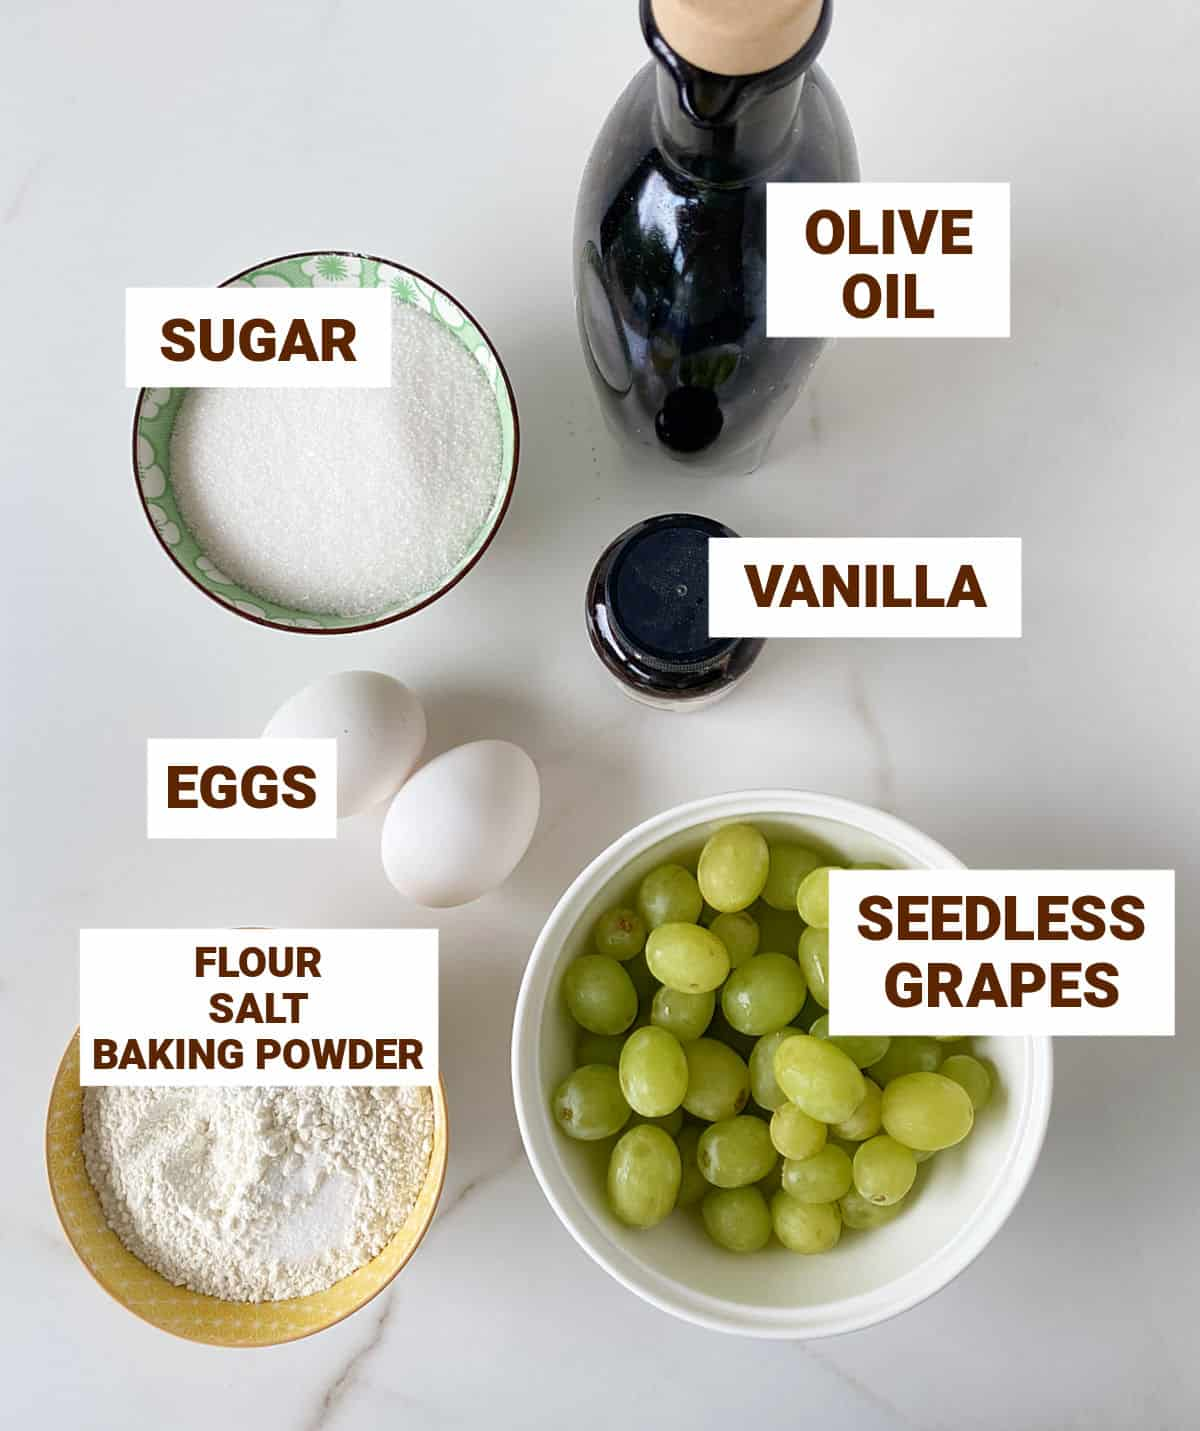 Bowls with ingredients for grape cake on white marble surface including olive oil and eggs